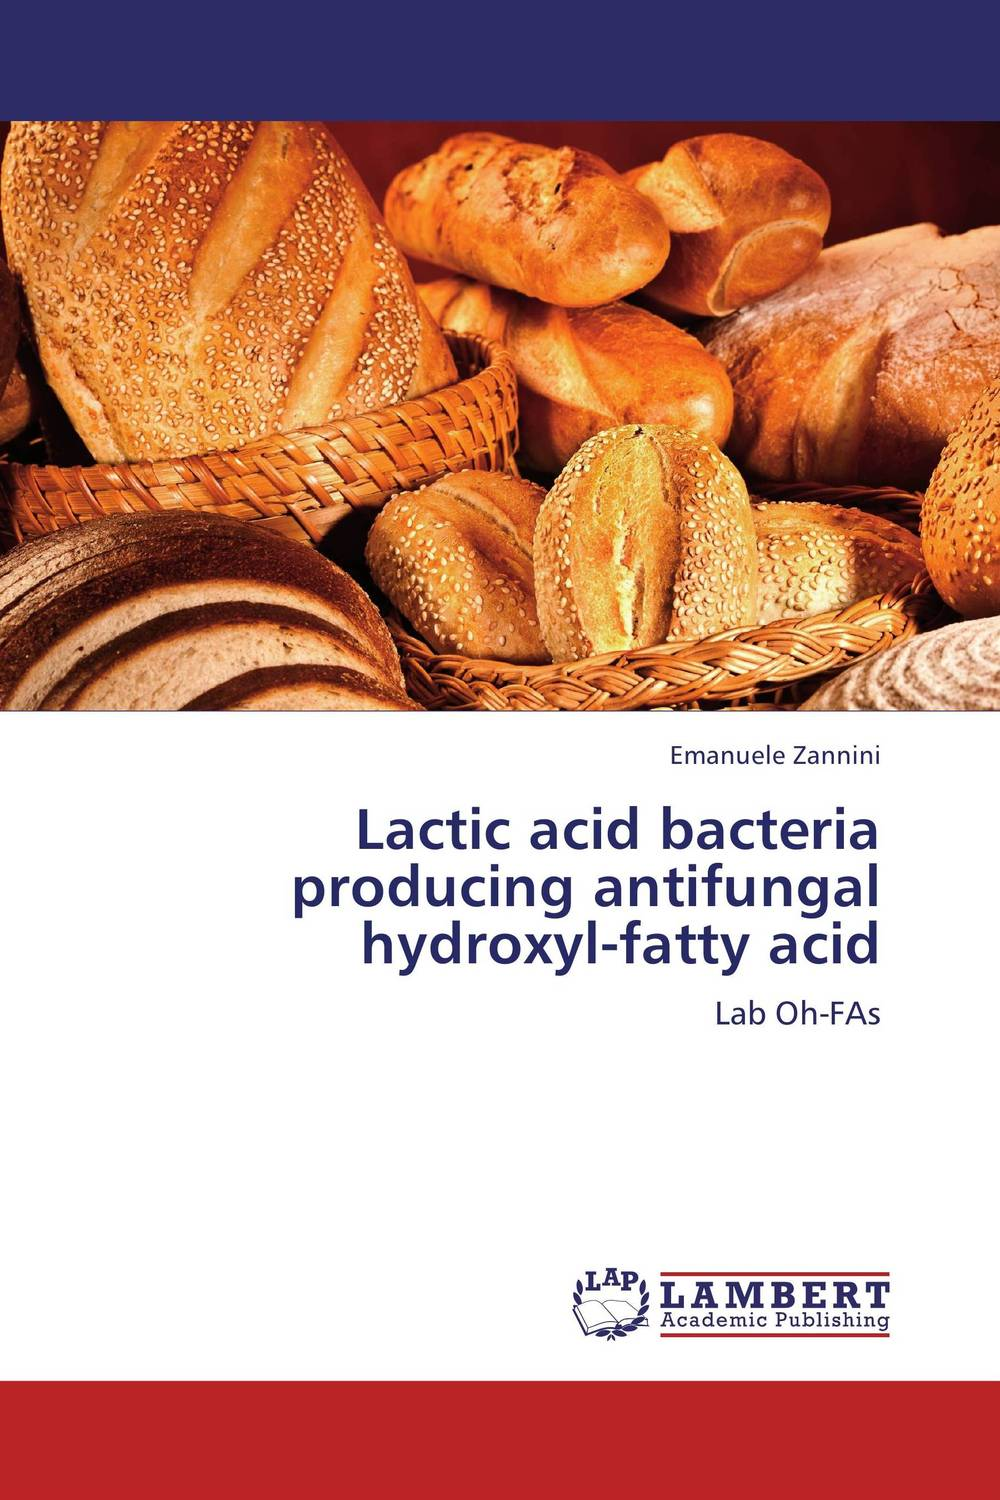 Lactic acid bacteria producing antifungal hydroxyl-fatty acid tannase producing fungi